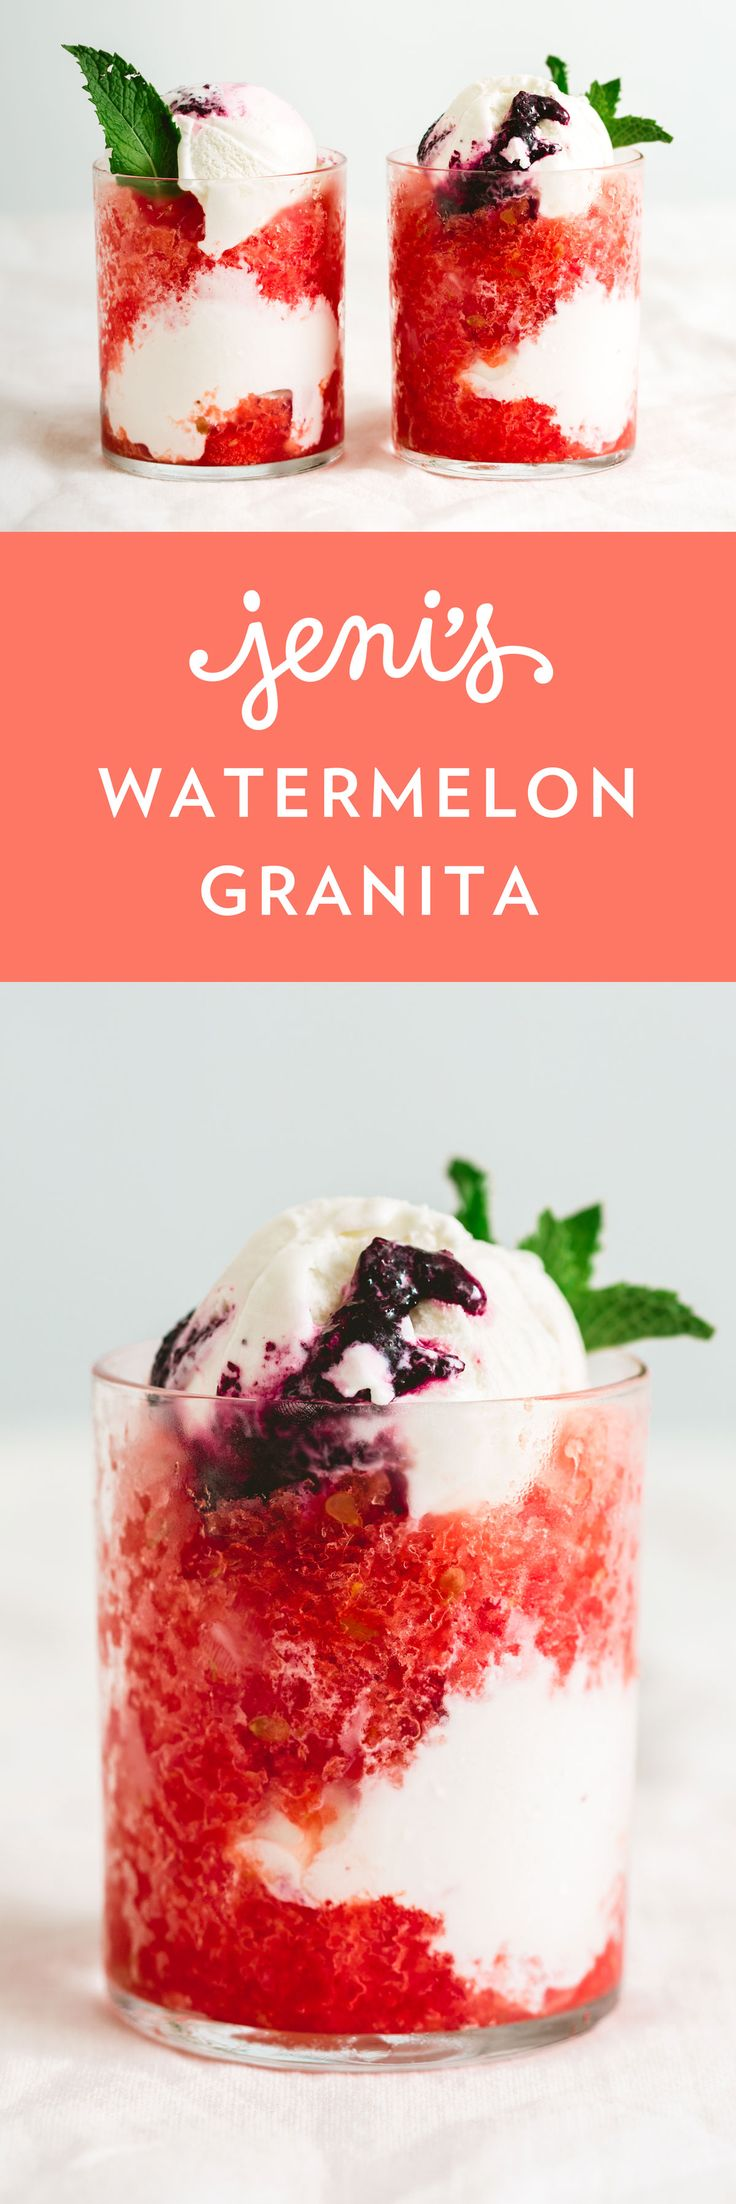 How do you outwit the hot and sultry dog days of summer? With wonderfully flaky, melt-in-your-mouth granita, an icy dessert made with fruit and water. We love making granitas with whatever fruit we have on hand—enjoying the granita on its own like the best-ever snow cone, or adding ice cream or buttermilk frozen yogurt to create a light and refreshing parfait-like sundae.